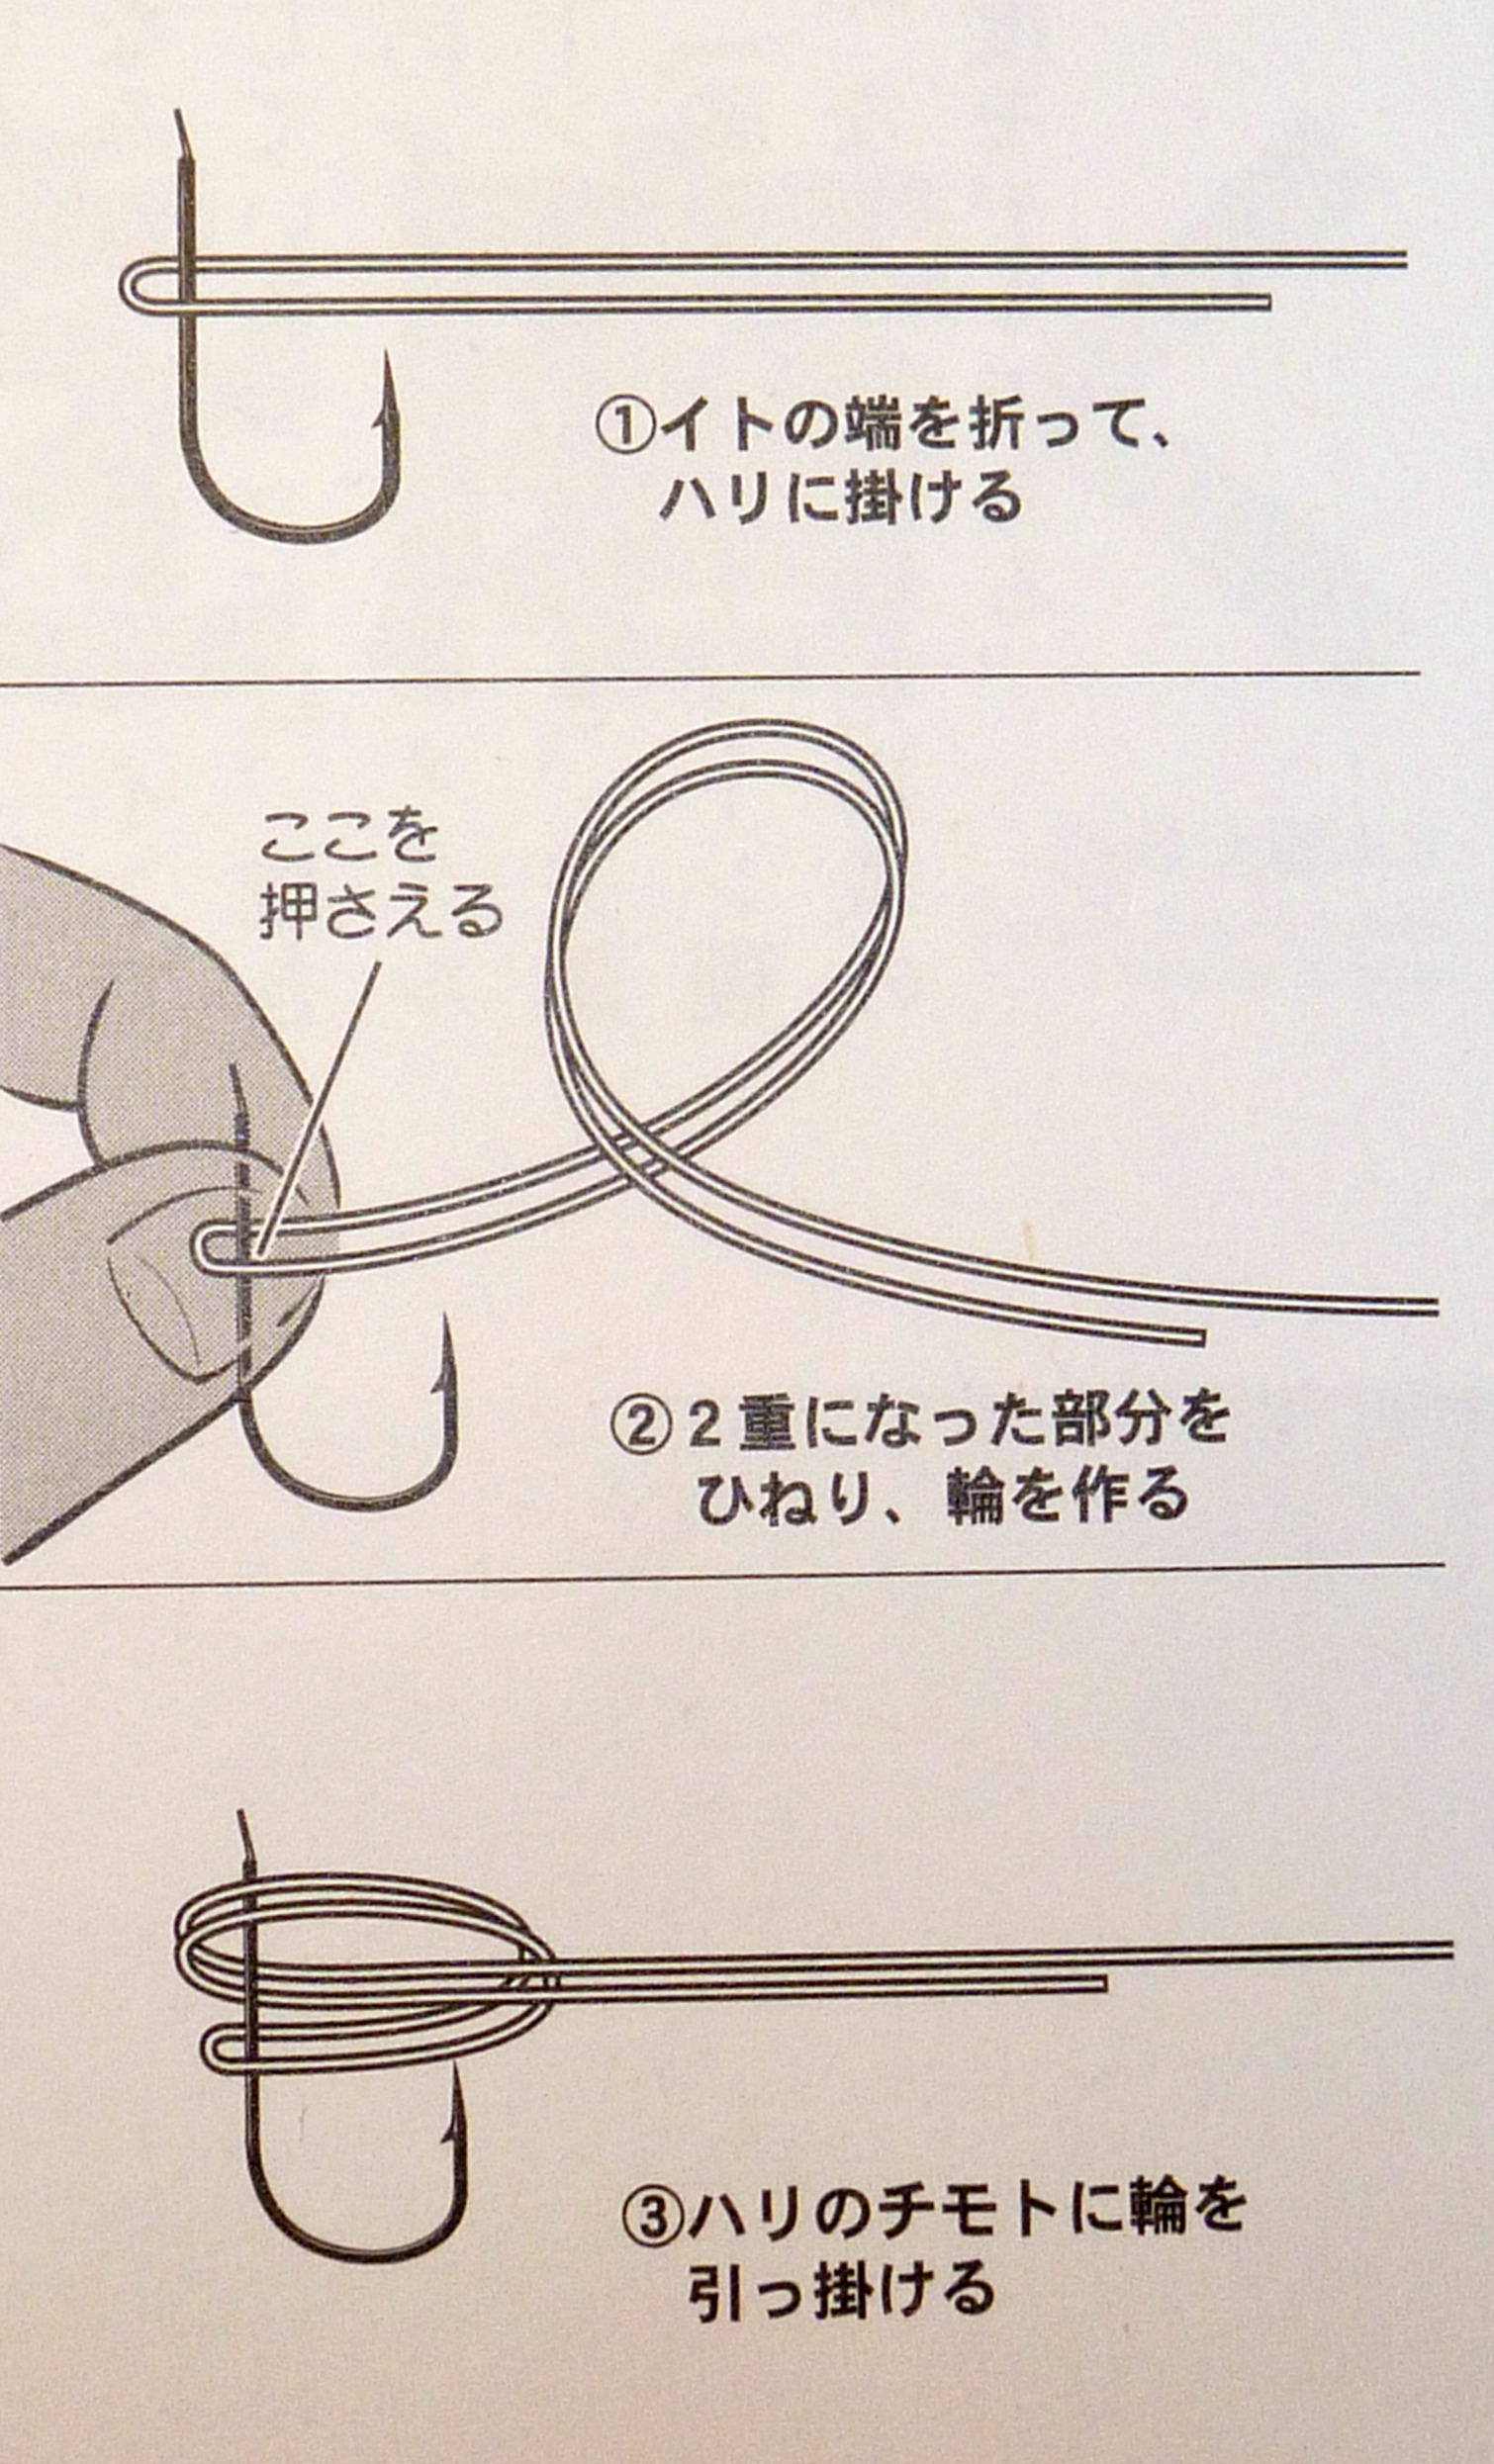 Illustration showing simple method of snelling a hook. Steps explained in text below.